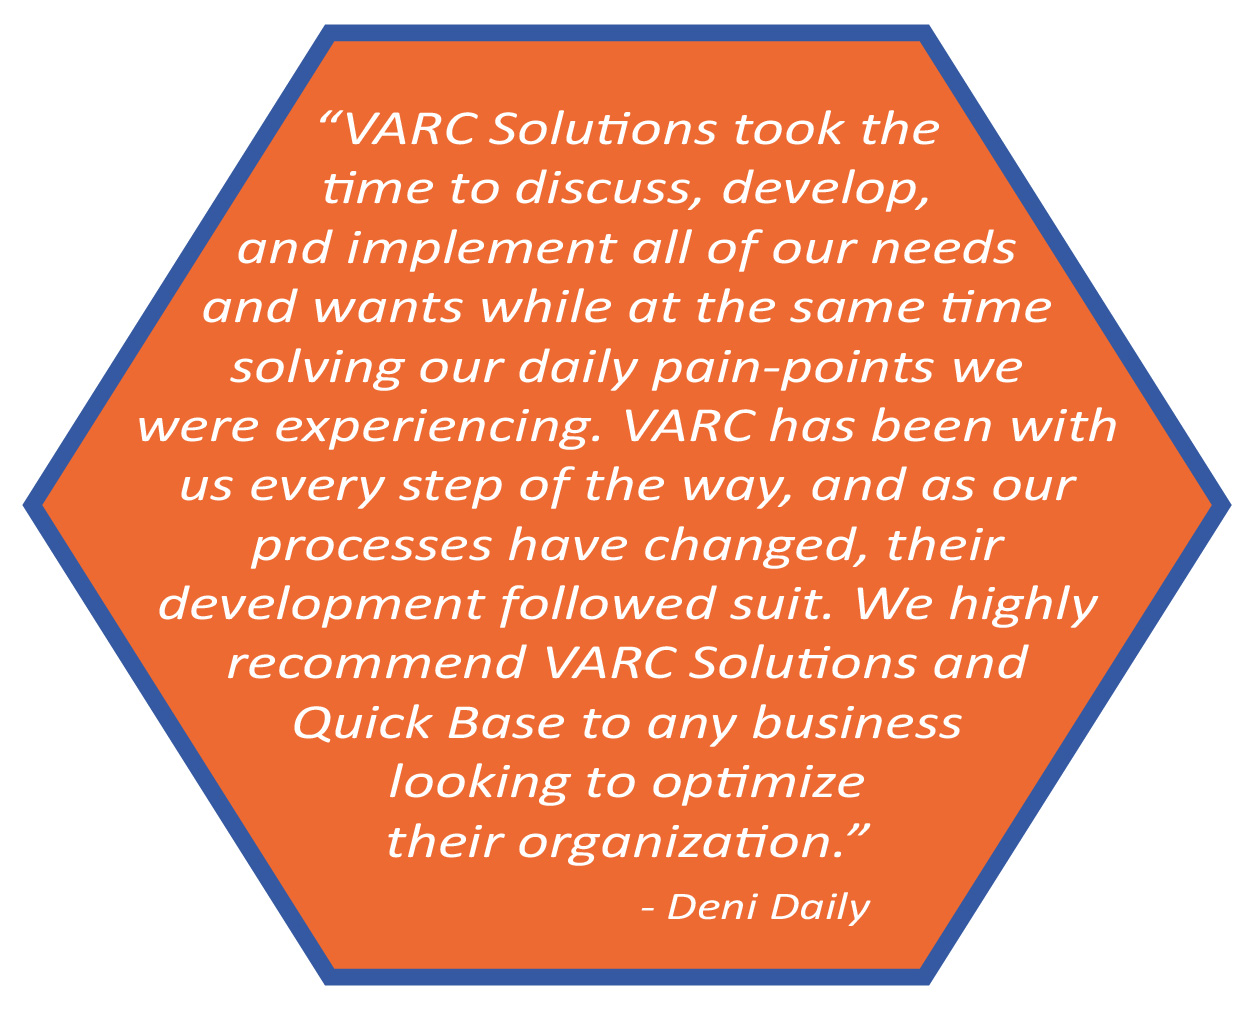 VARC Solutions took the time to discuss, develop, and implement all of our needs and wants while at the same time solving our daily pain-points we were experiencing. VARC has been with us every step of the way, and as our processes have changed, their development followed suite. We highly recommend VARC Solutions and Quick Base to any business looking to optimize their organization. Deni Daily